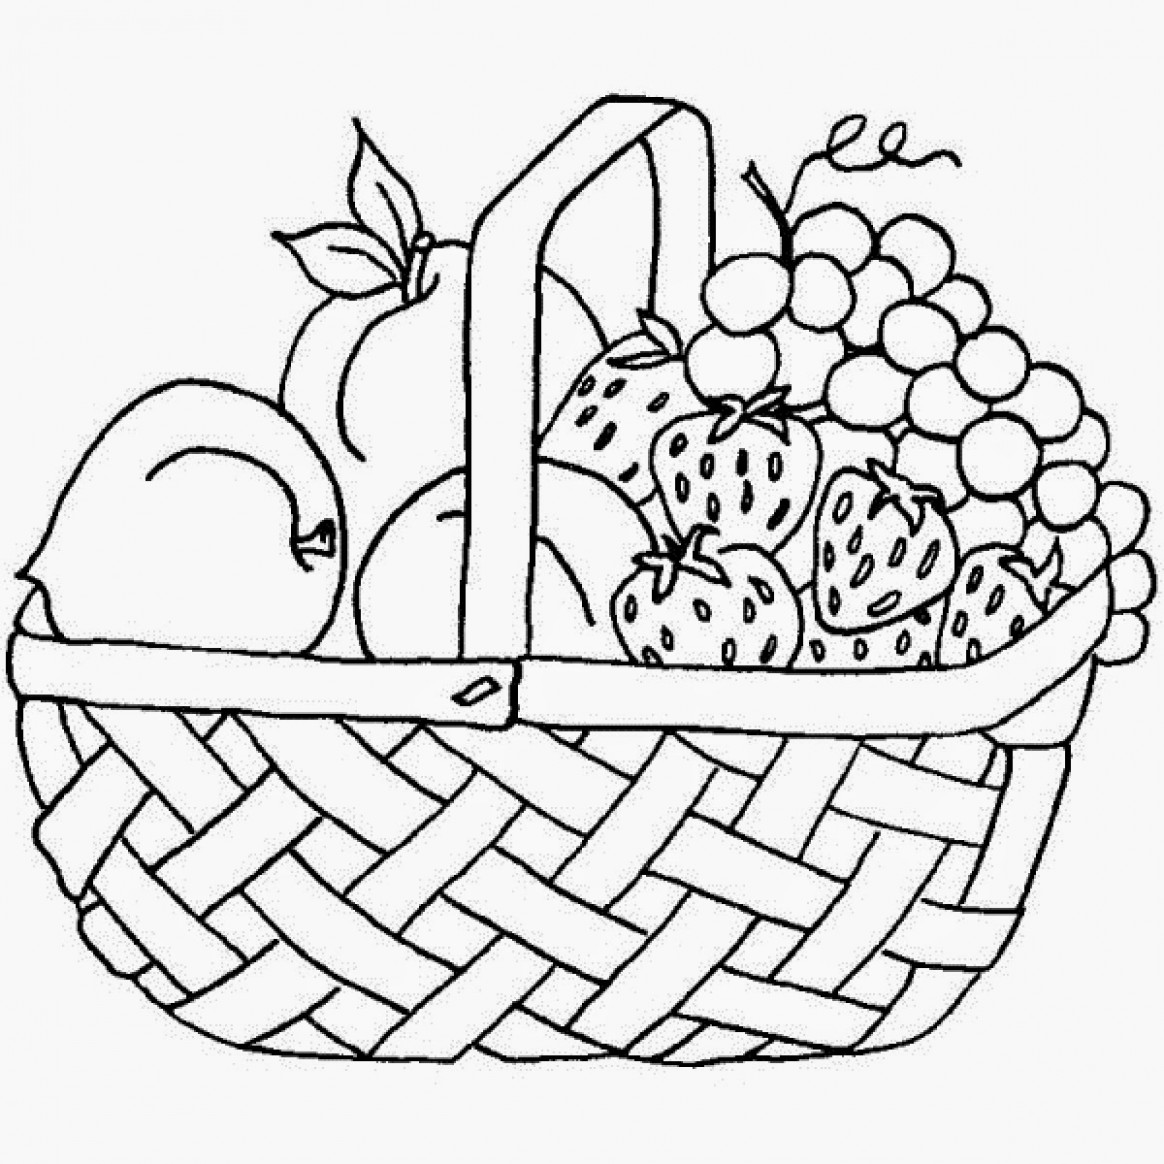 how to draw a bowl of fruit step by step fruit bowl sketch at paintingvalleycom explore fruit a to step how of bowl step by draw